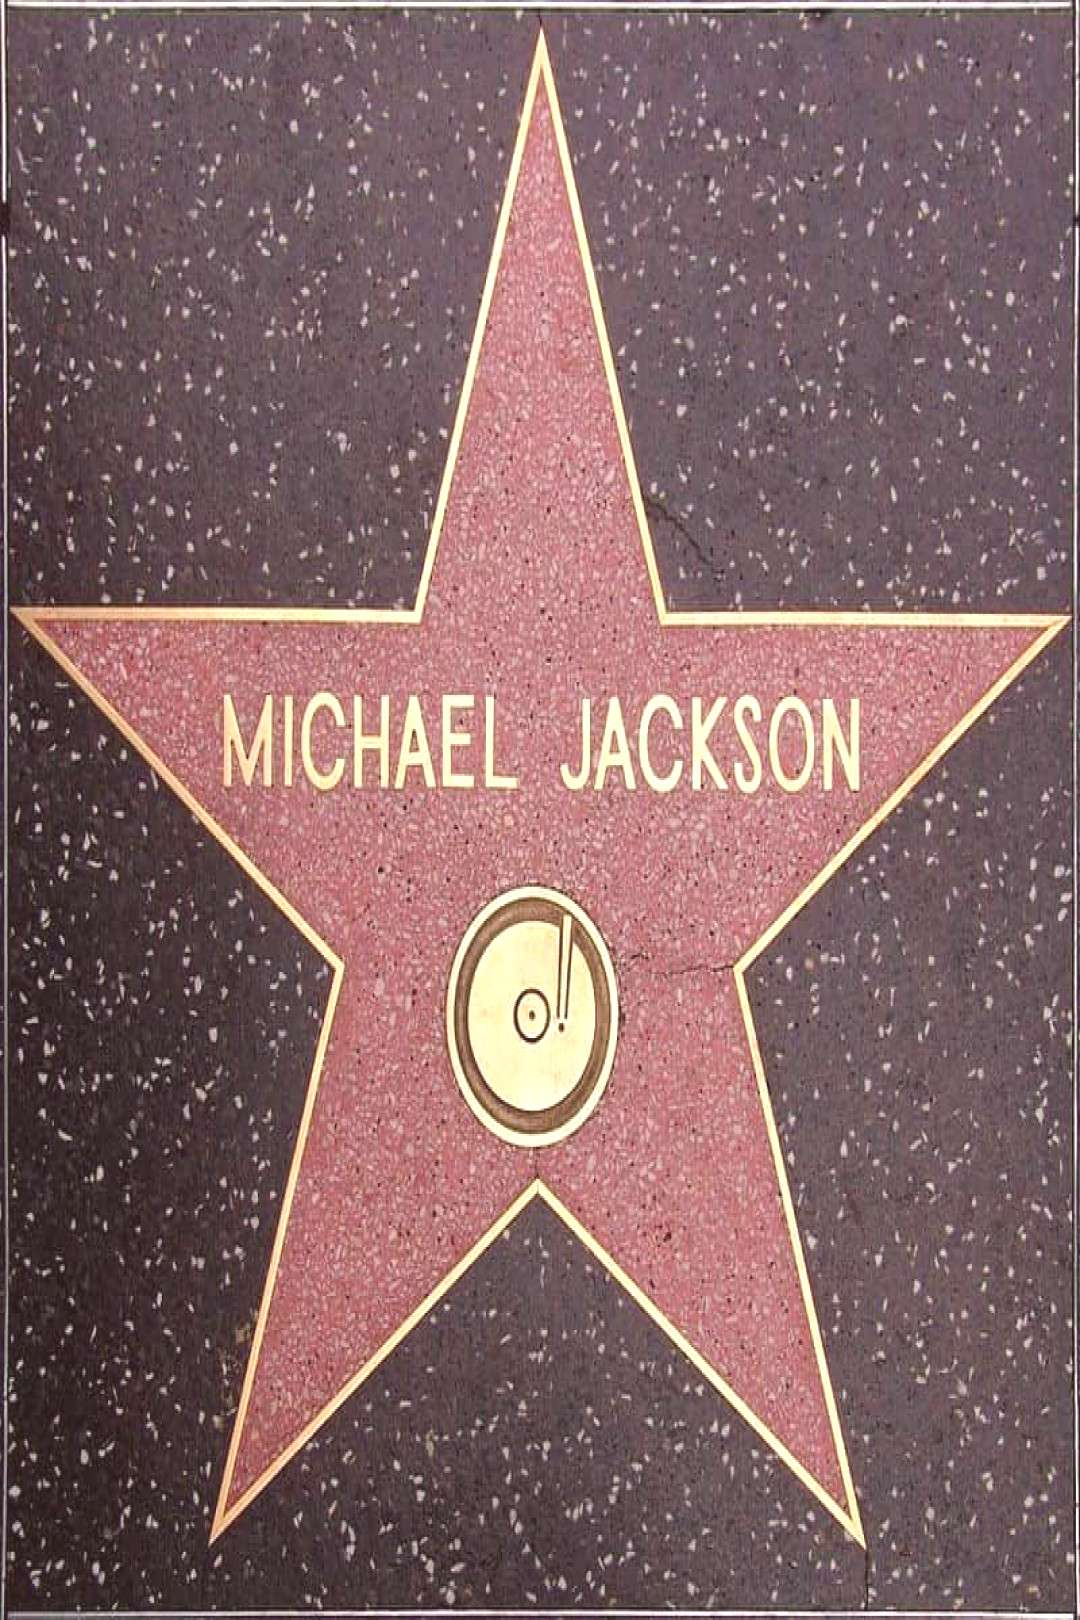 30 Real Facts About Michael Jacksons Childhood and How He Became The King of Pop,#about